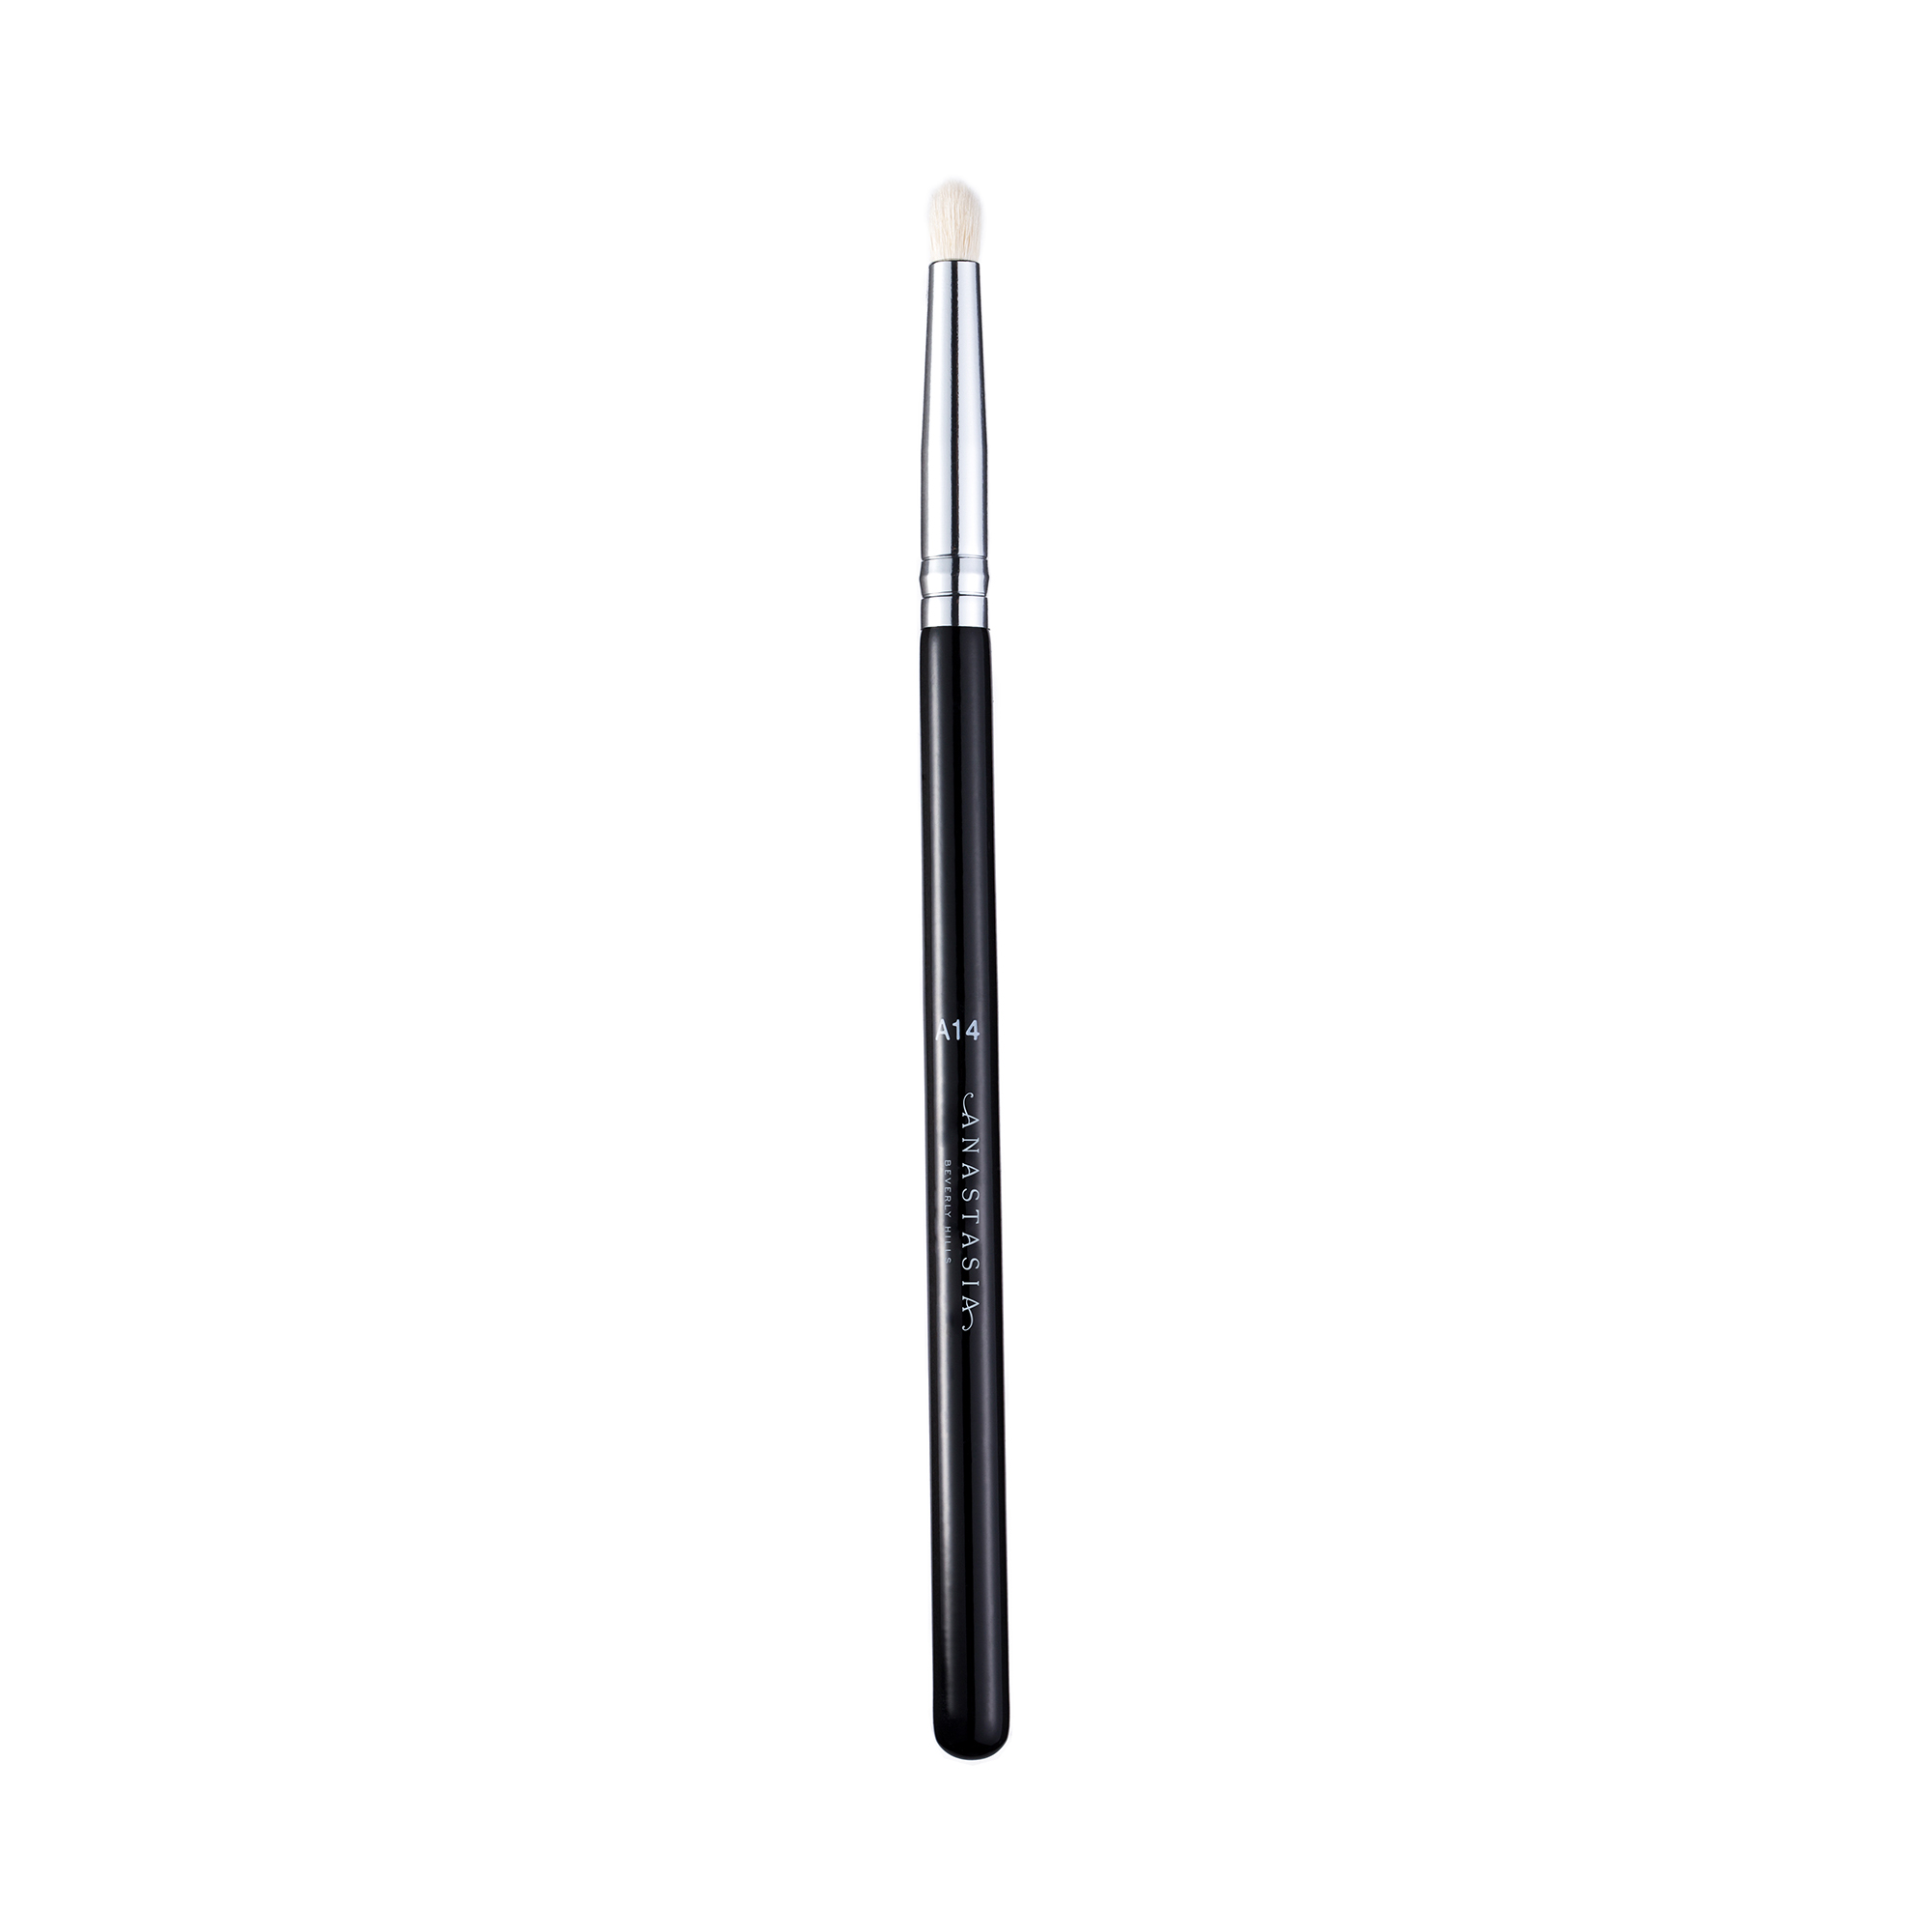 Pro Brush- A14 Pencil Brush